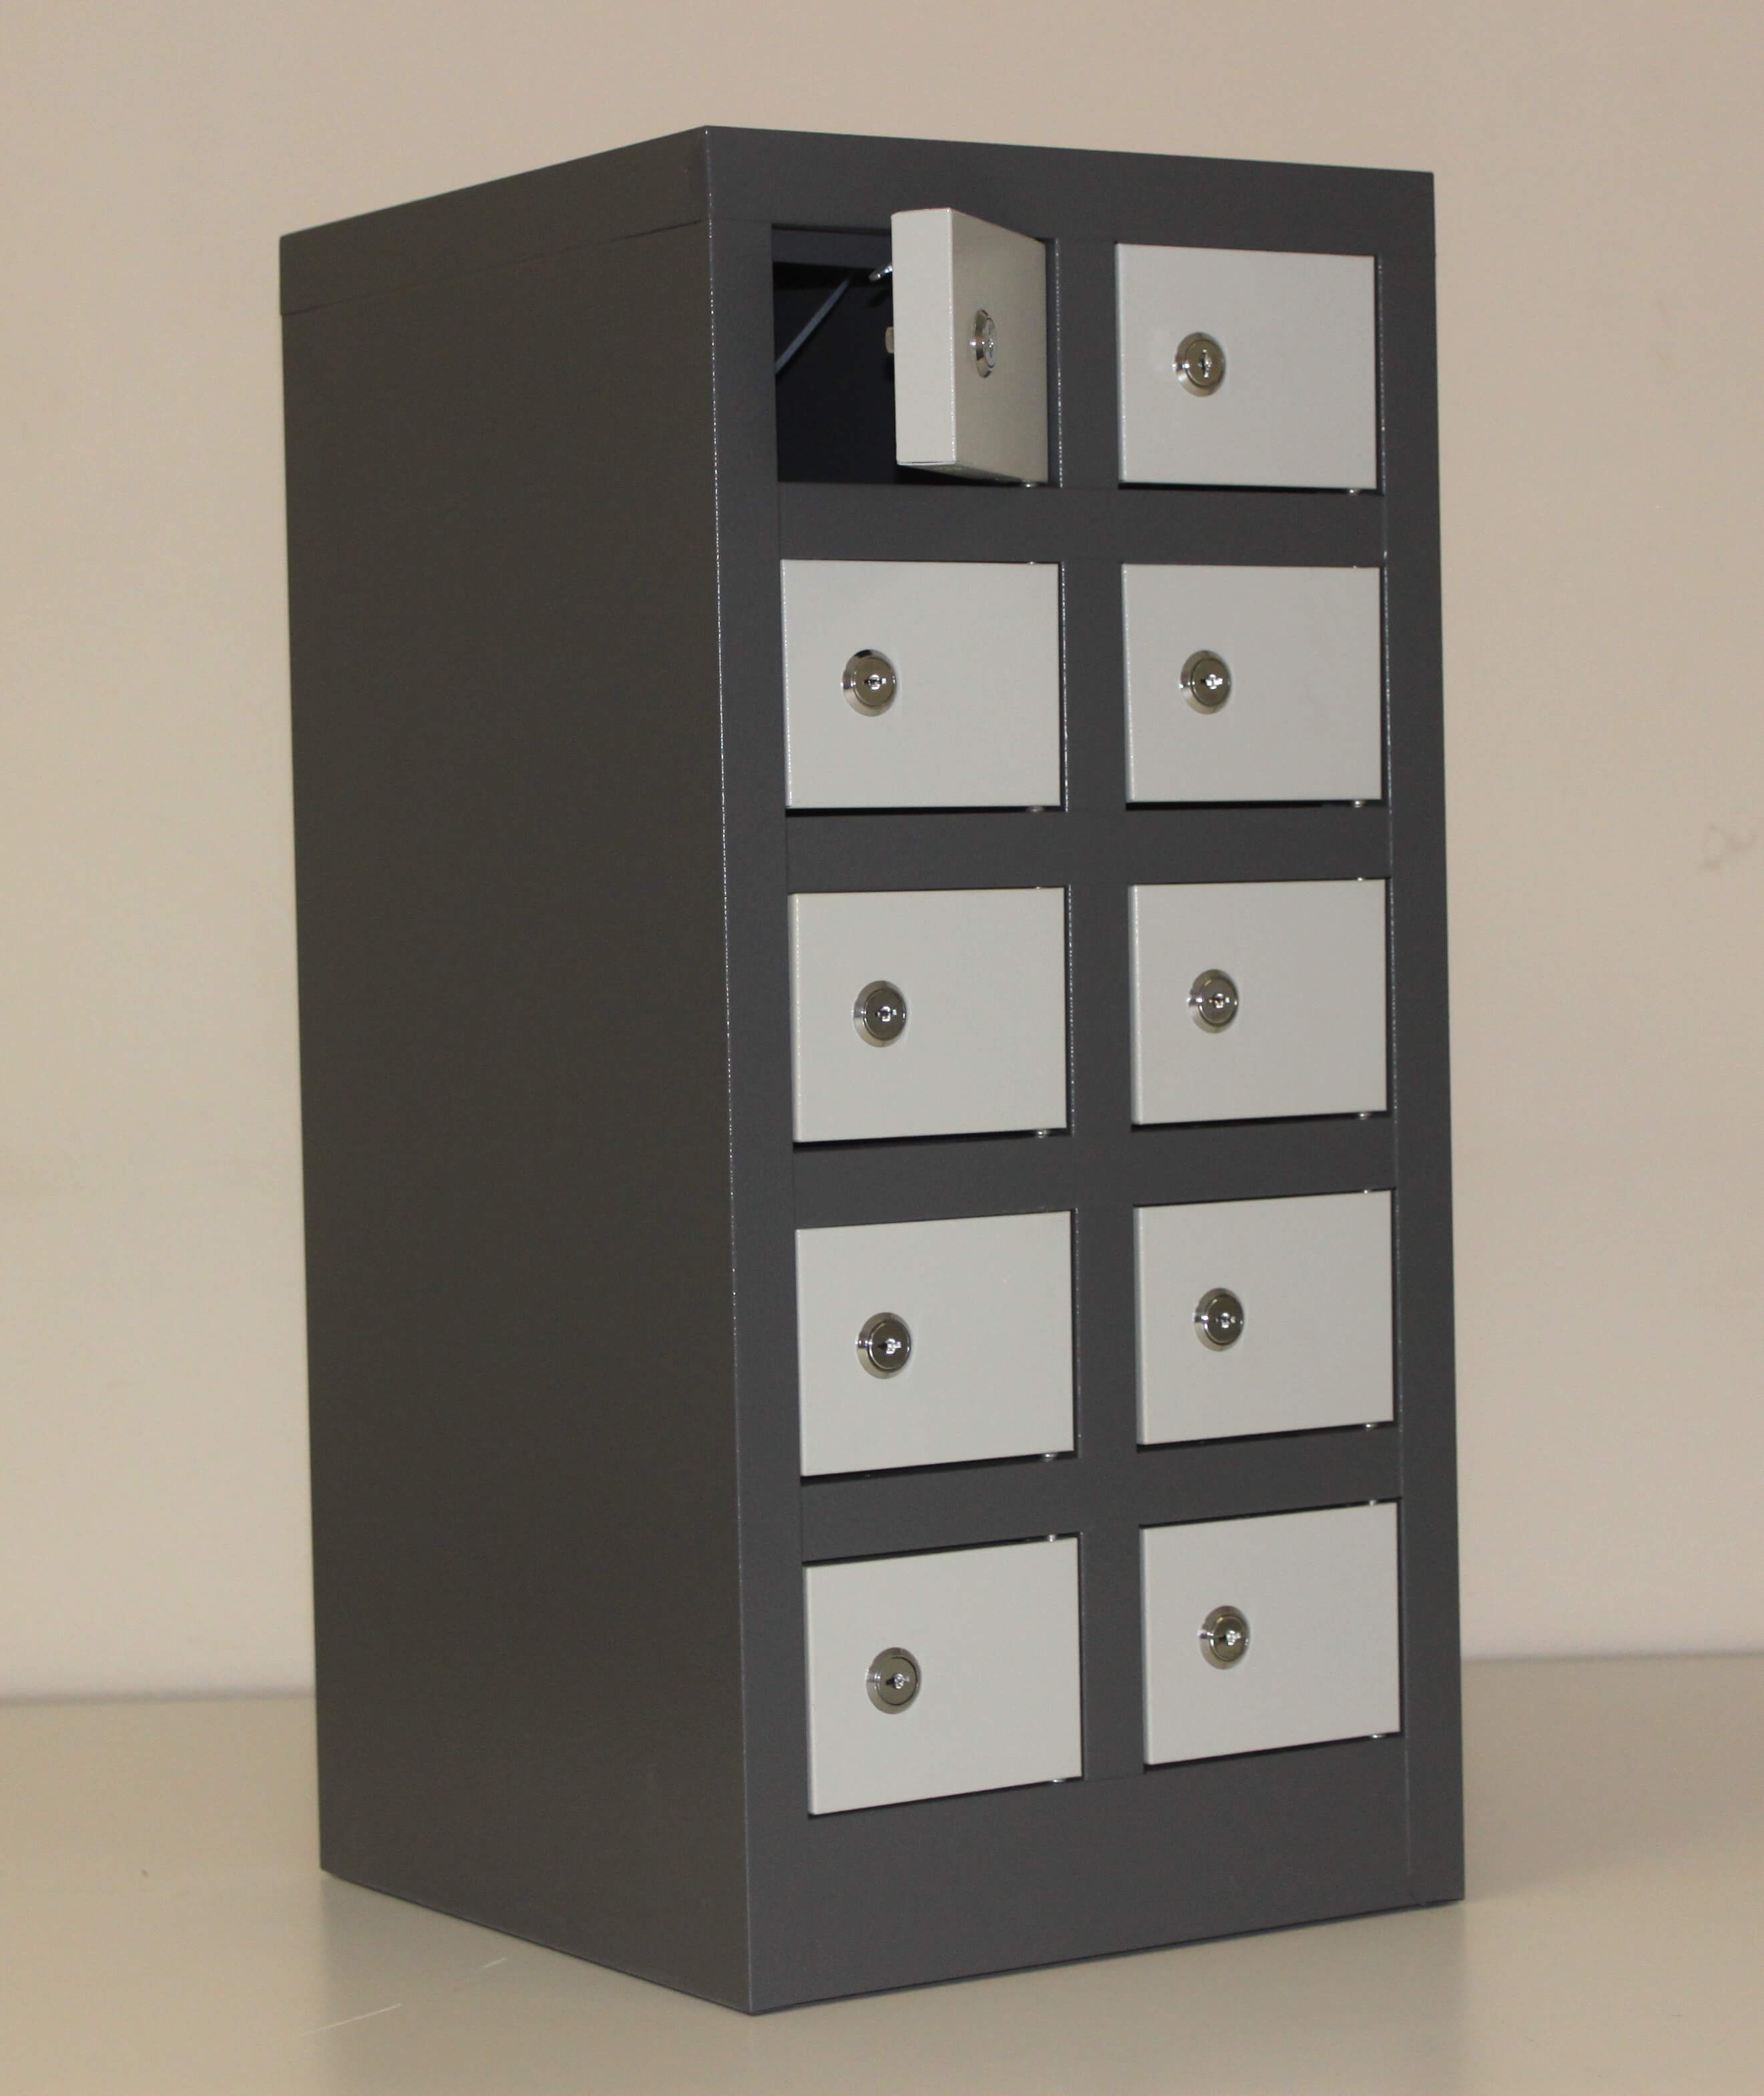 10 Compartment Cellphone Locker